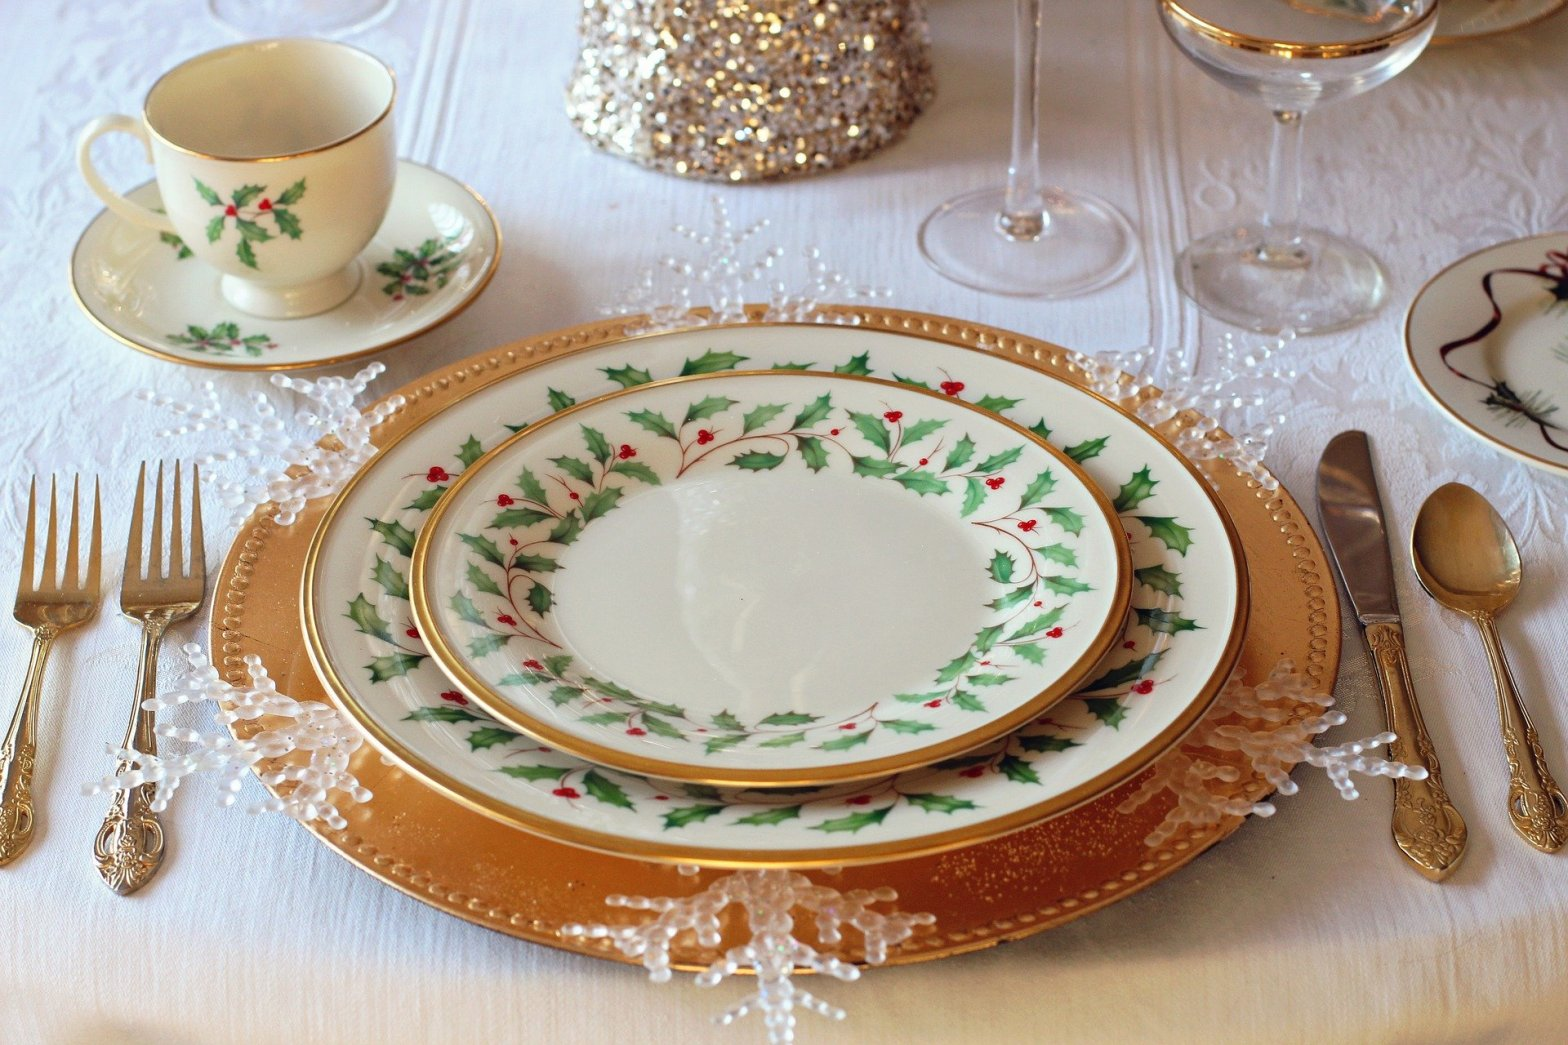 Christmas dinner place setting